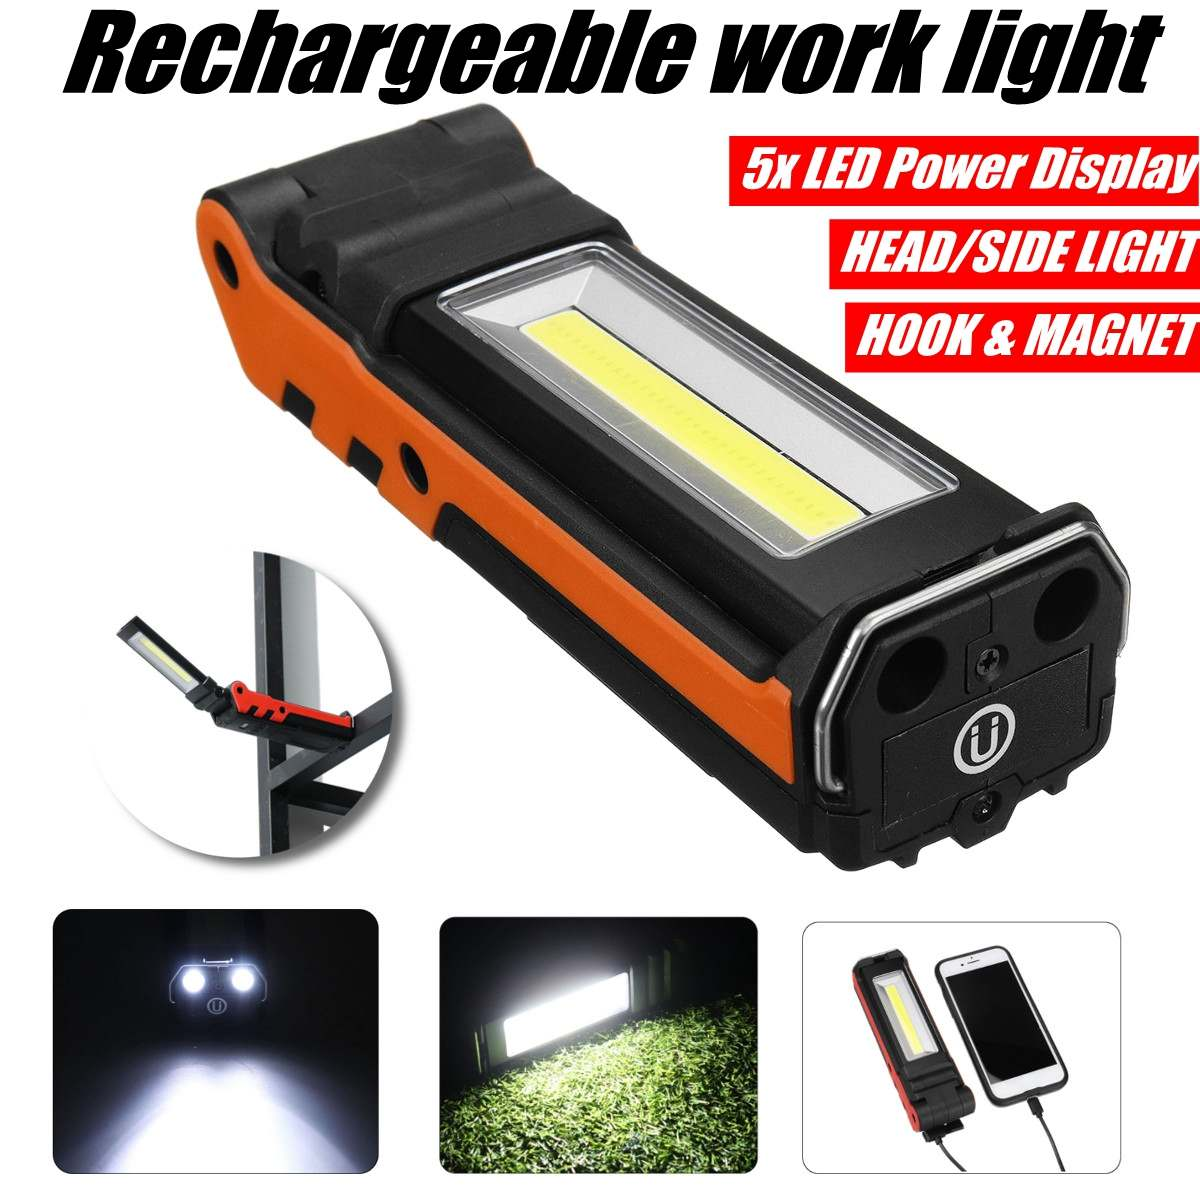 USB Rechargeable COB LED Work Light Dimmable Flashlight Magnetic Inspection Lamp with Hook Power Bank 2000mAh 18650 BatteryUSB Rechargeable COB LED Work Light Dimmable Flashlight Magnetic Inspection Lamp with Hook Power Bank 2000mAh 18650 Battery